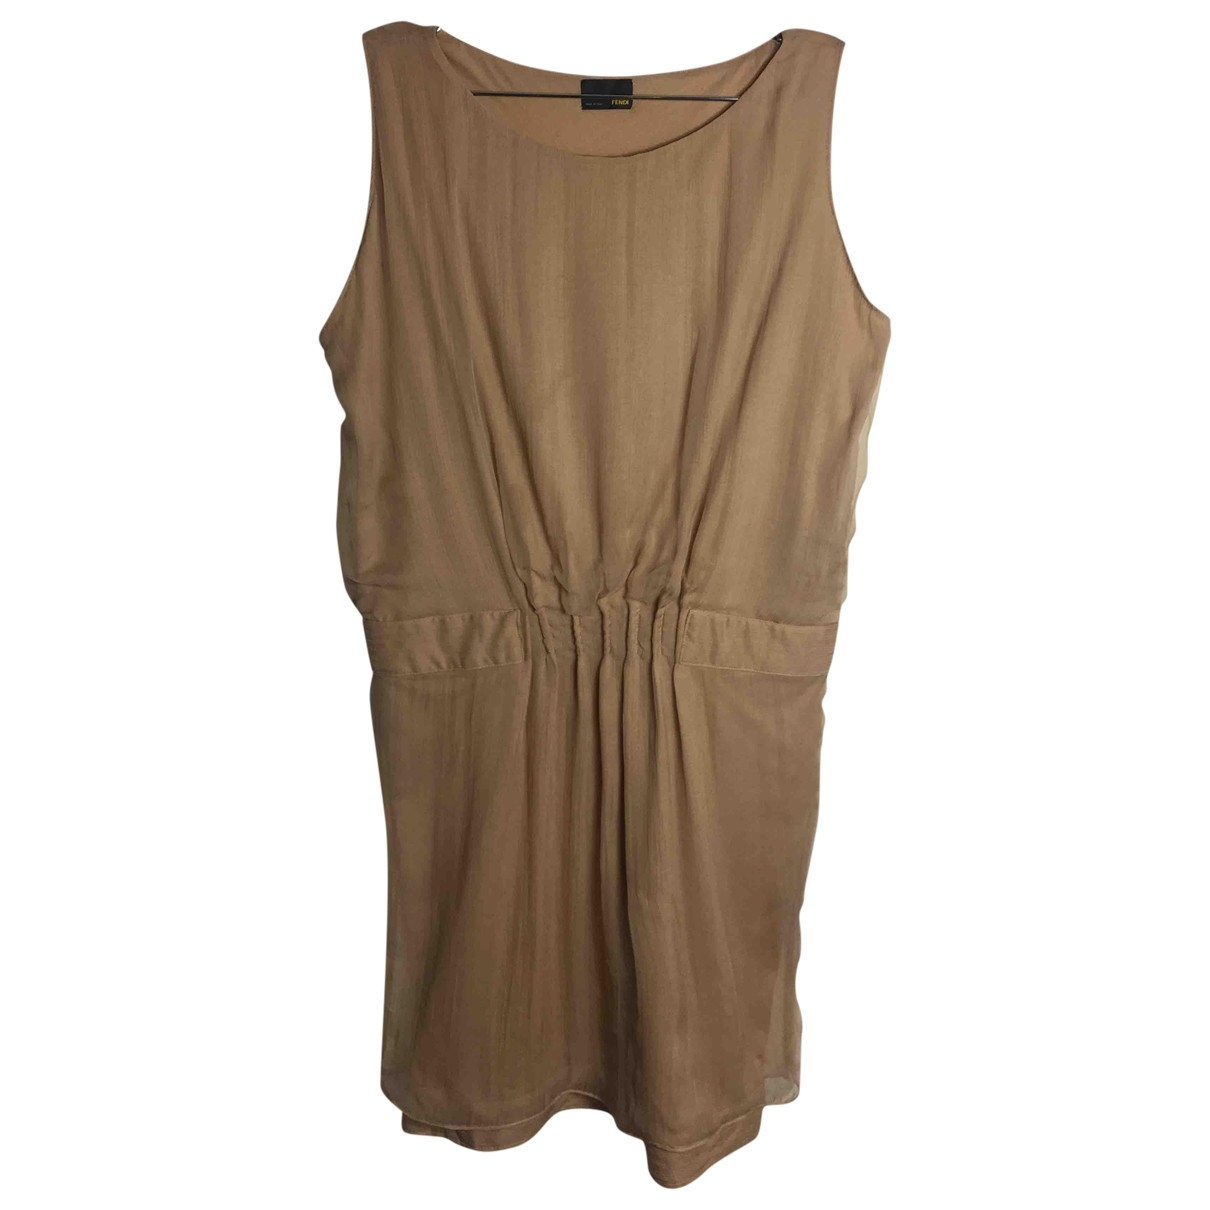 Fendi \N Camel Silk dress for Women 42 IT